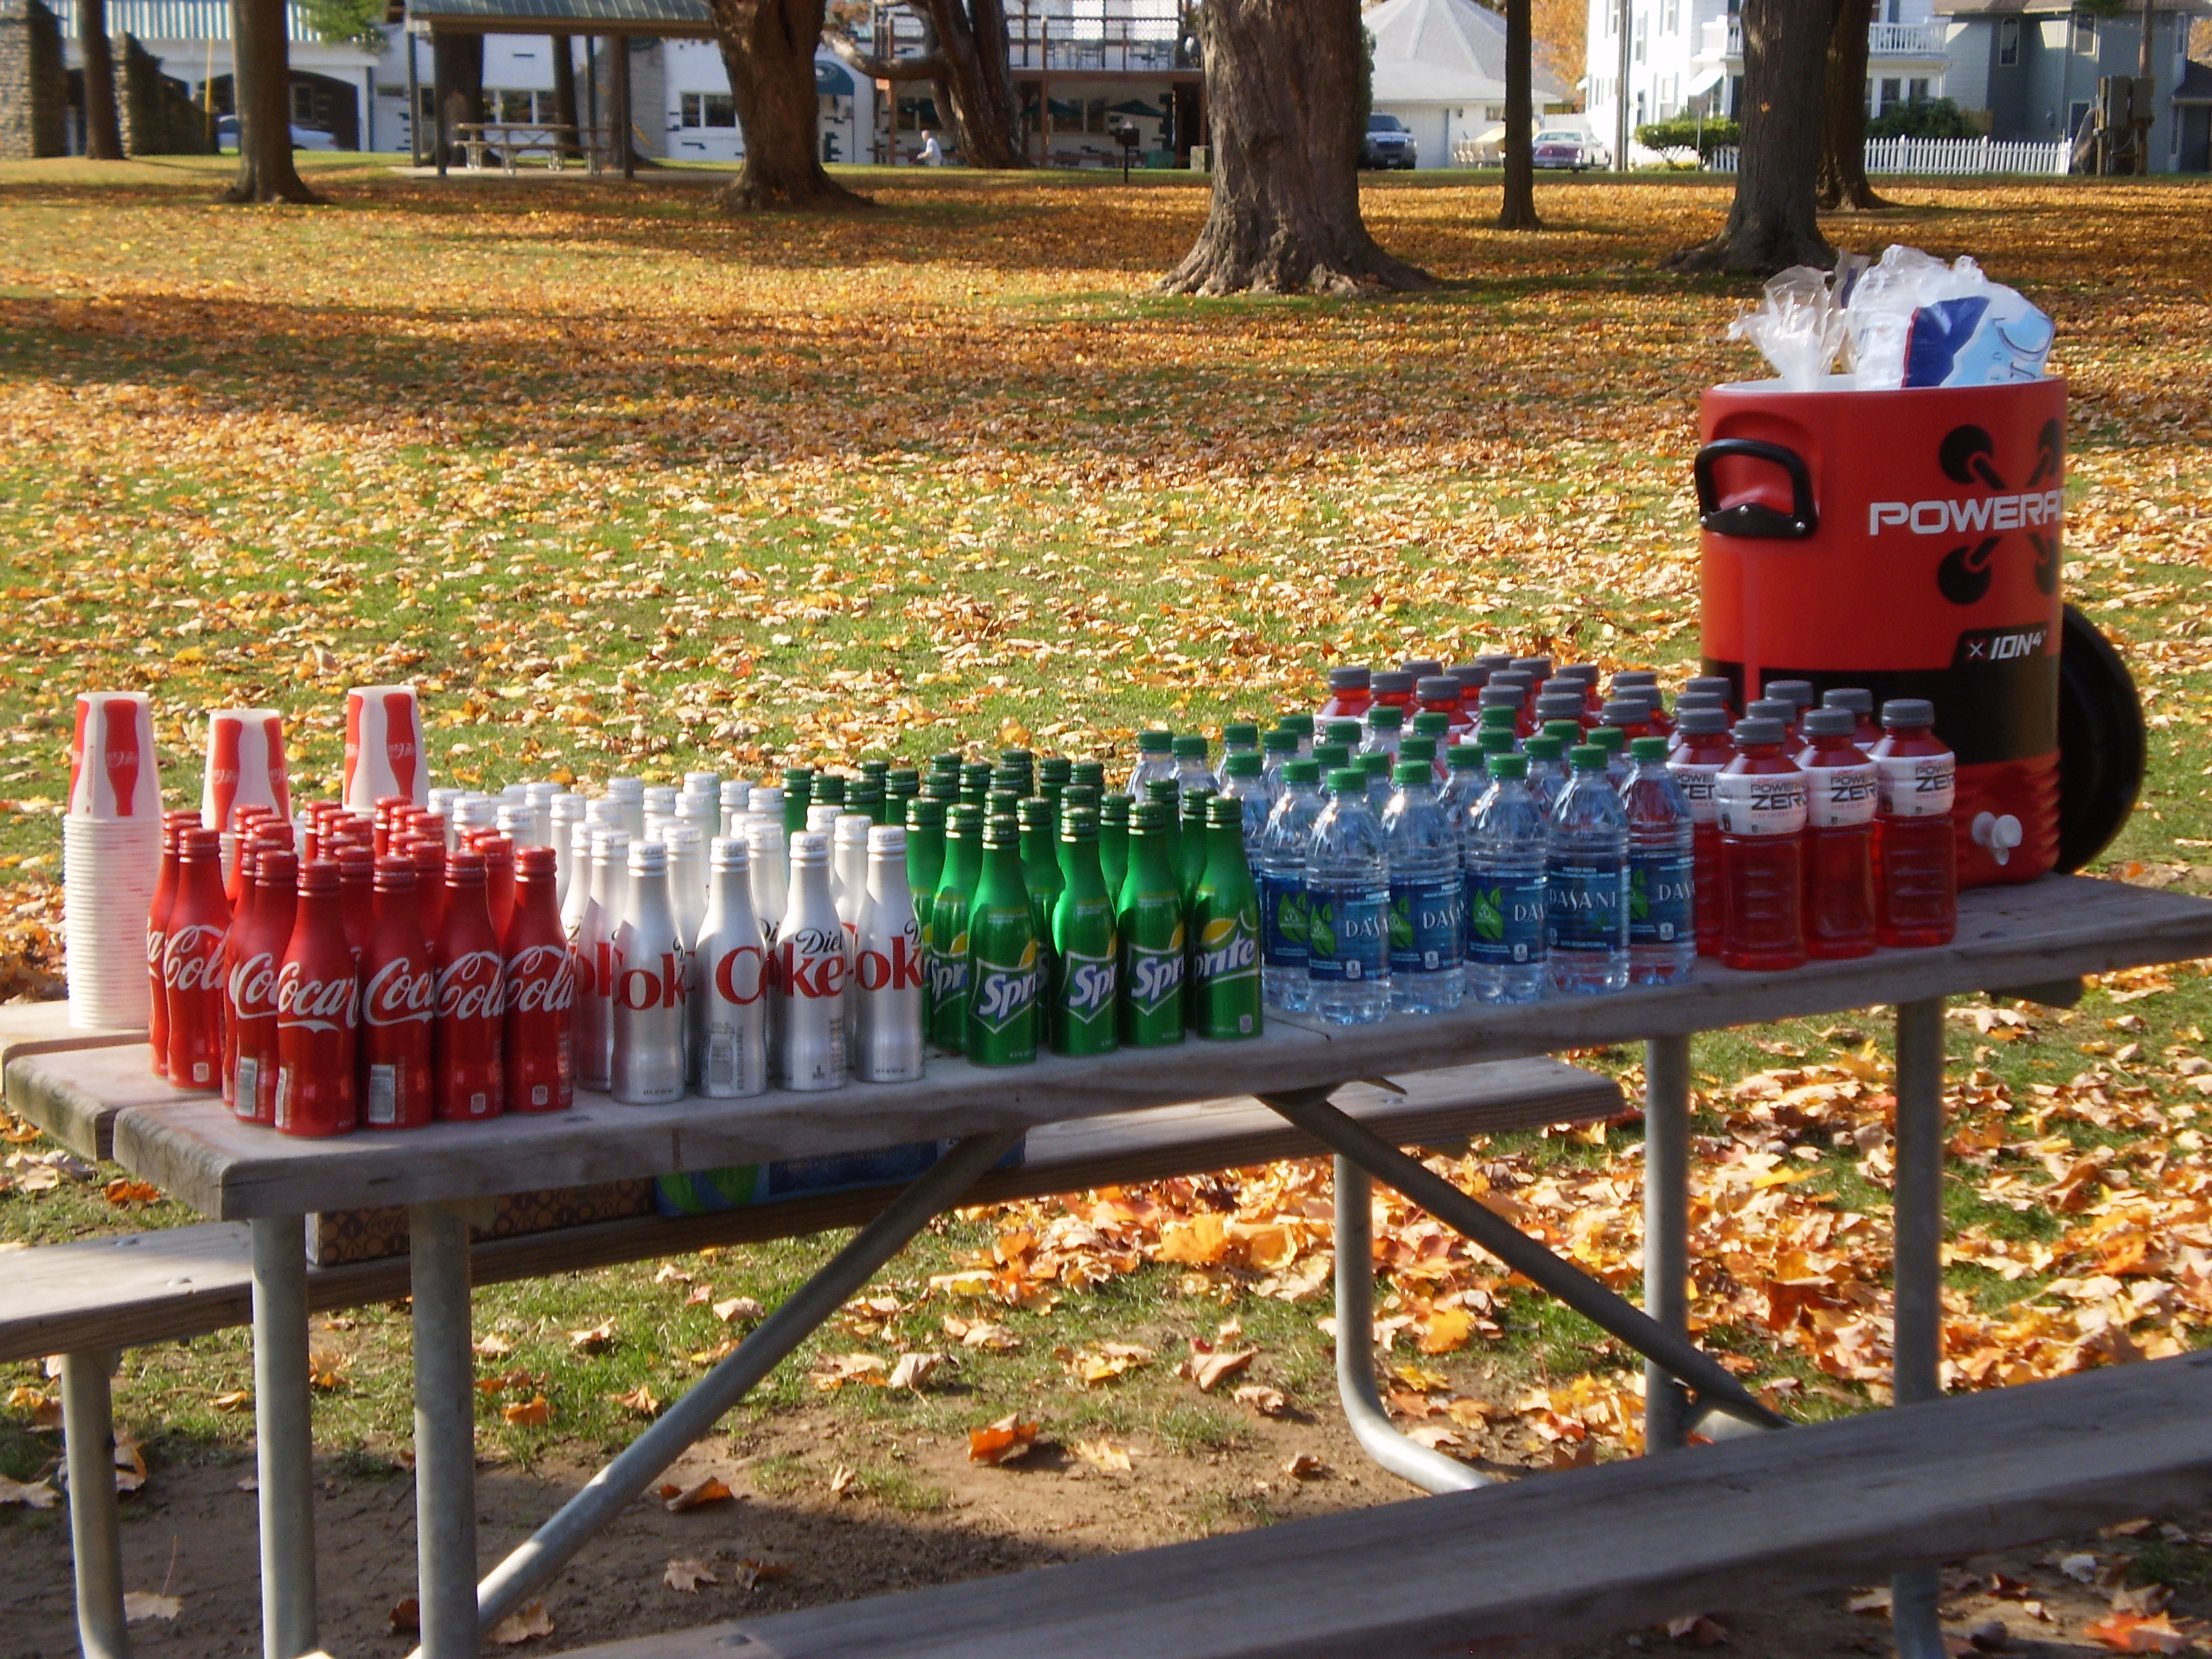 Coca-Cola beverages provided by Coke